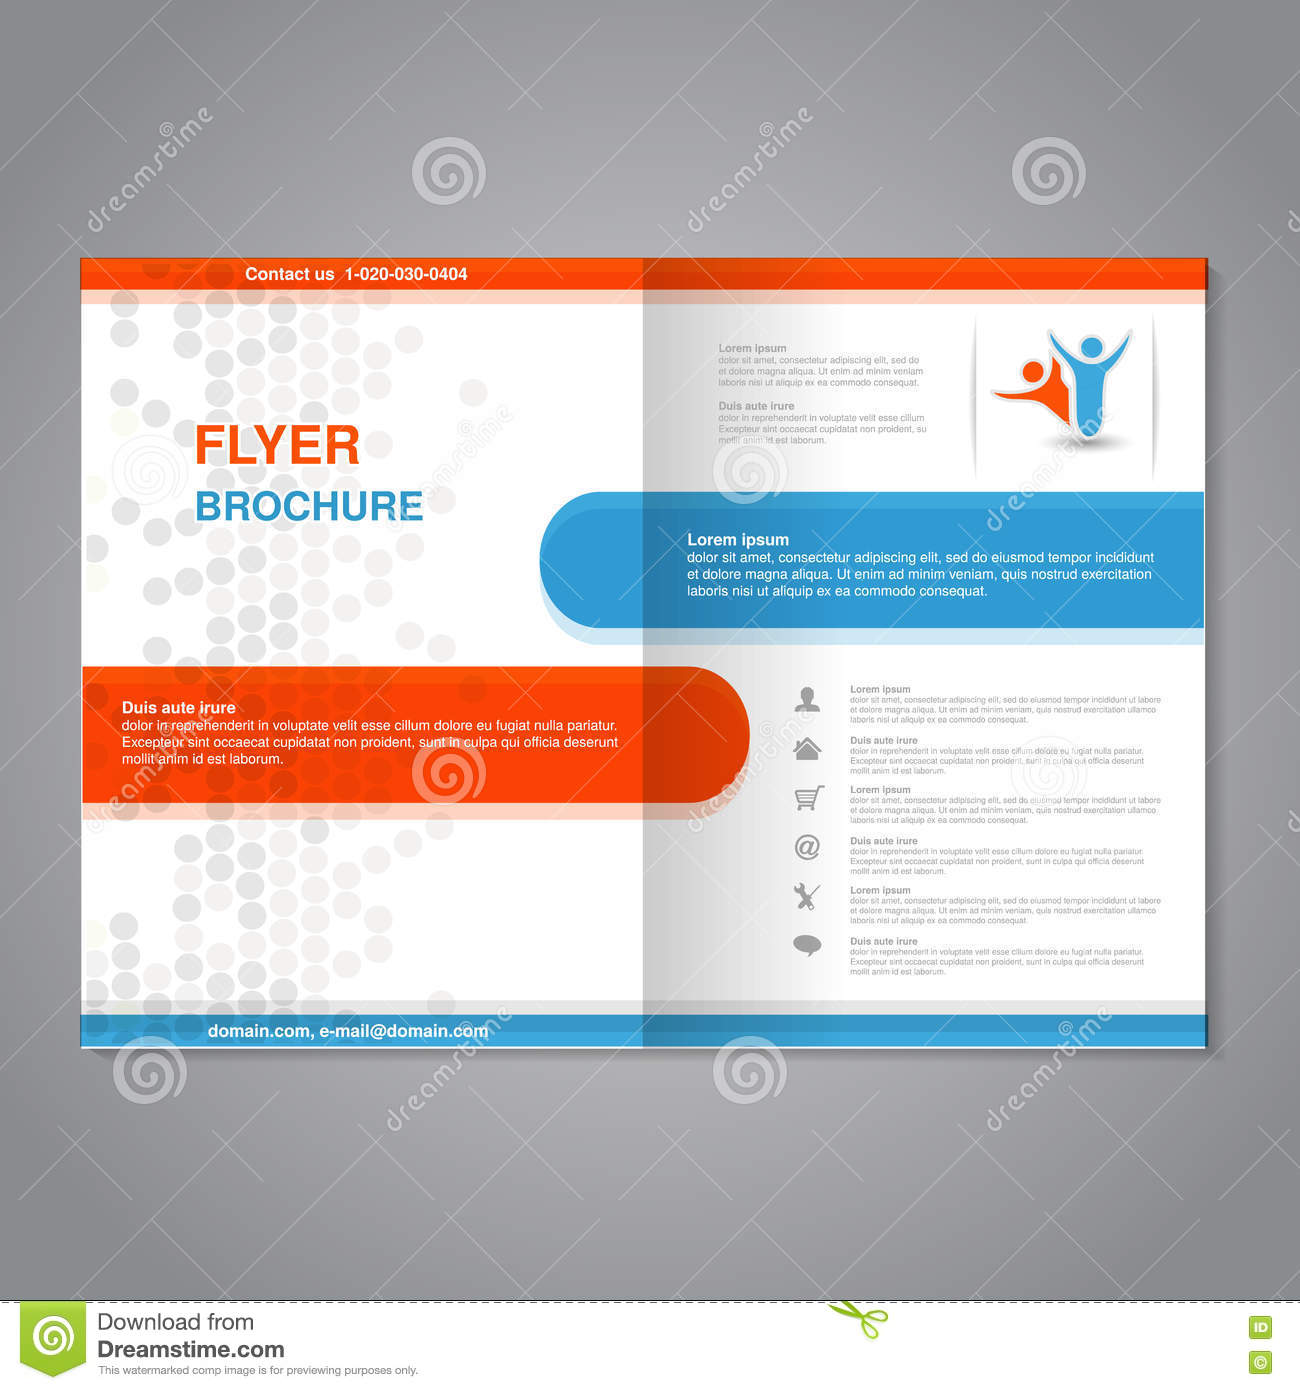 Poster design size - Modern Brochure Abstract Flyer With Simple Dotted Design Layout Template Aspect Ratio For A4 Size Poster Of Blue Orange Grey